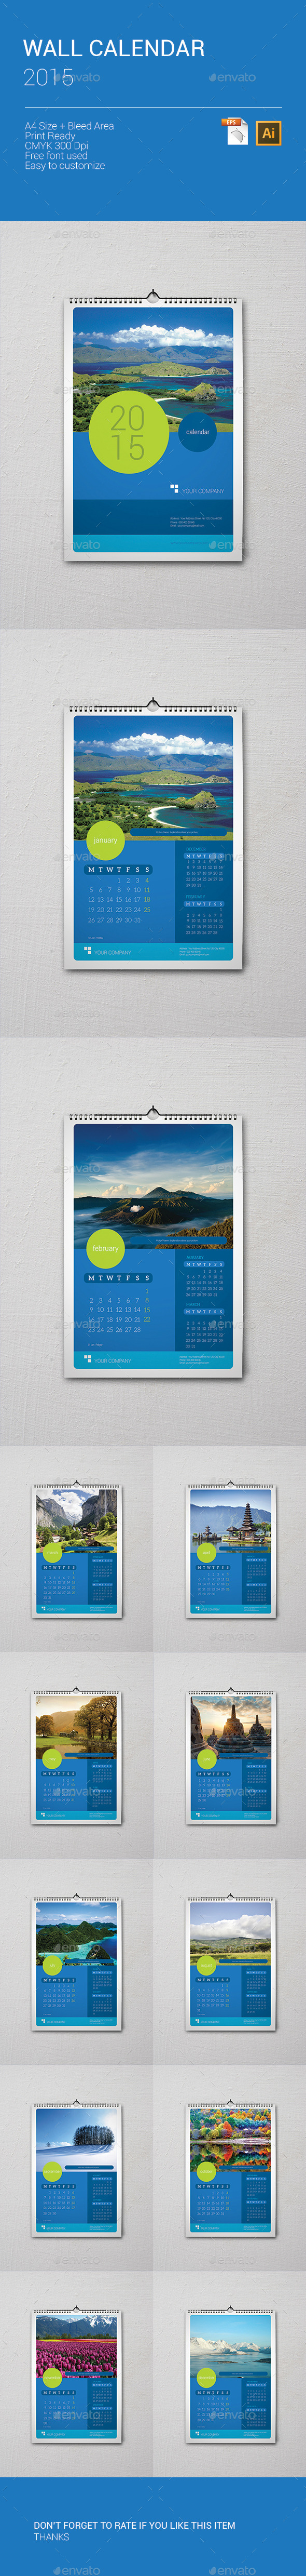 GraphicRiver Wall Calendar 2015 9640512